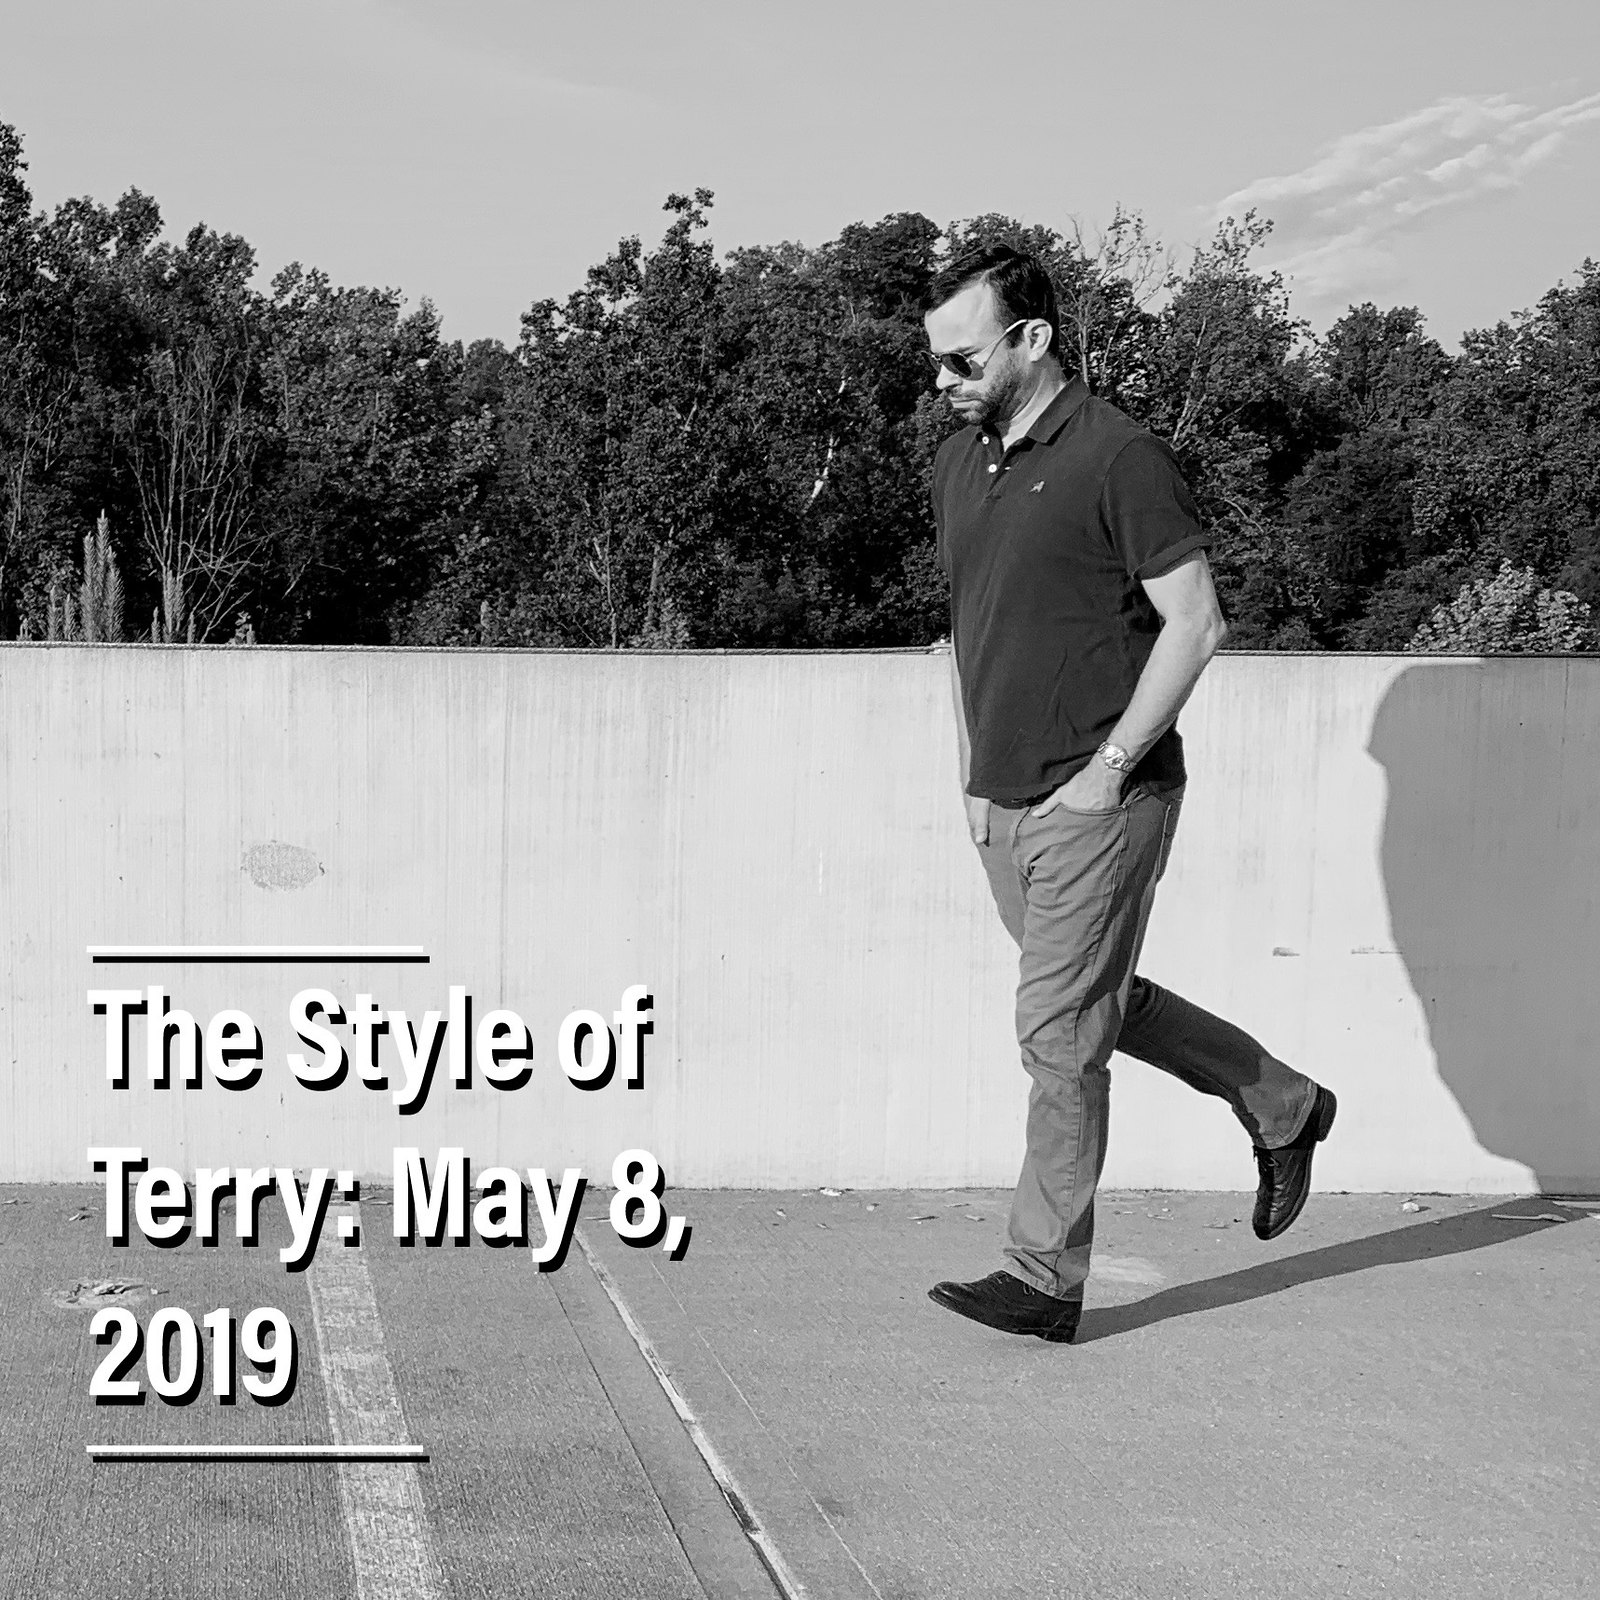 The Style of Terry: 5.8.19